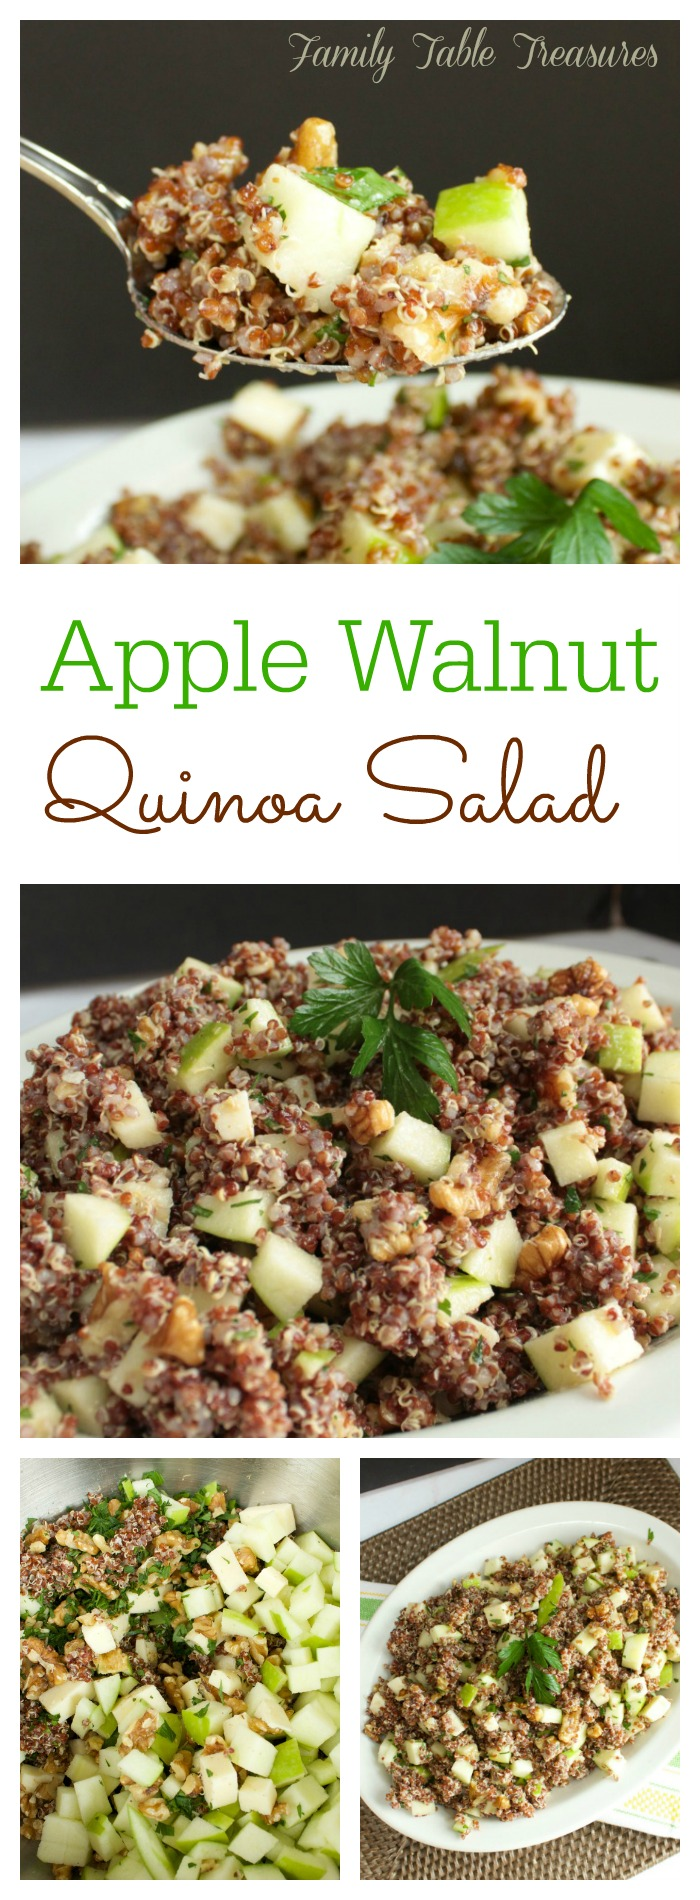 Apple Walnut Quinoa Salad